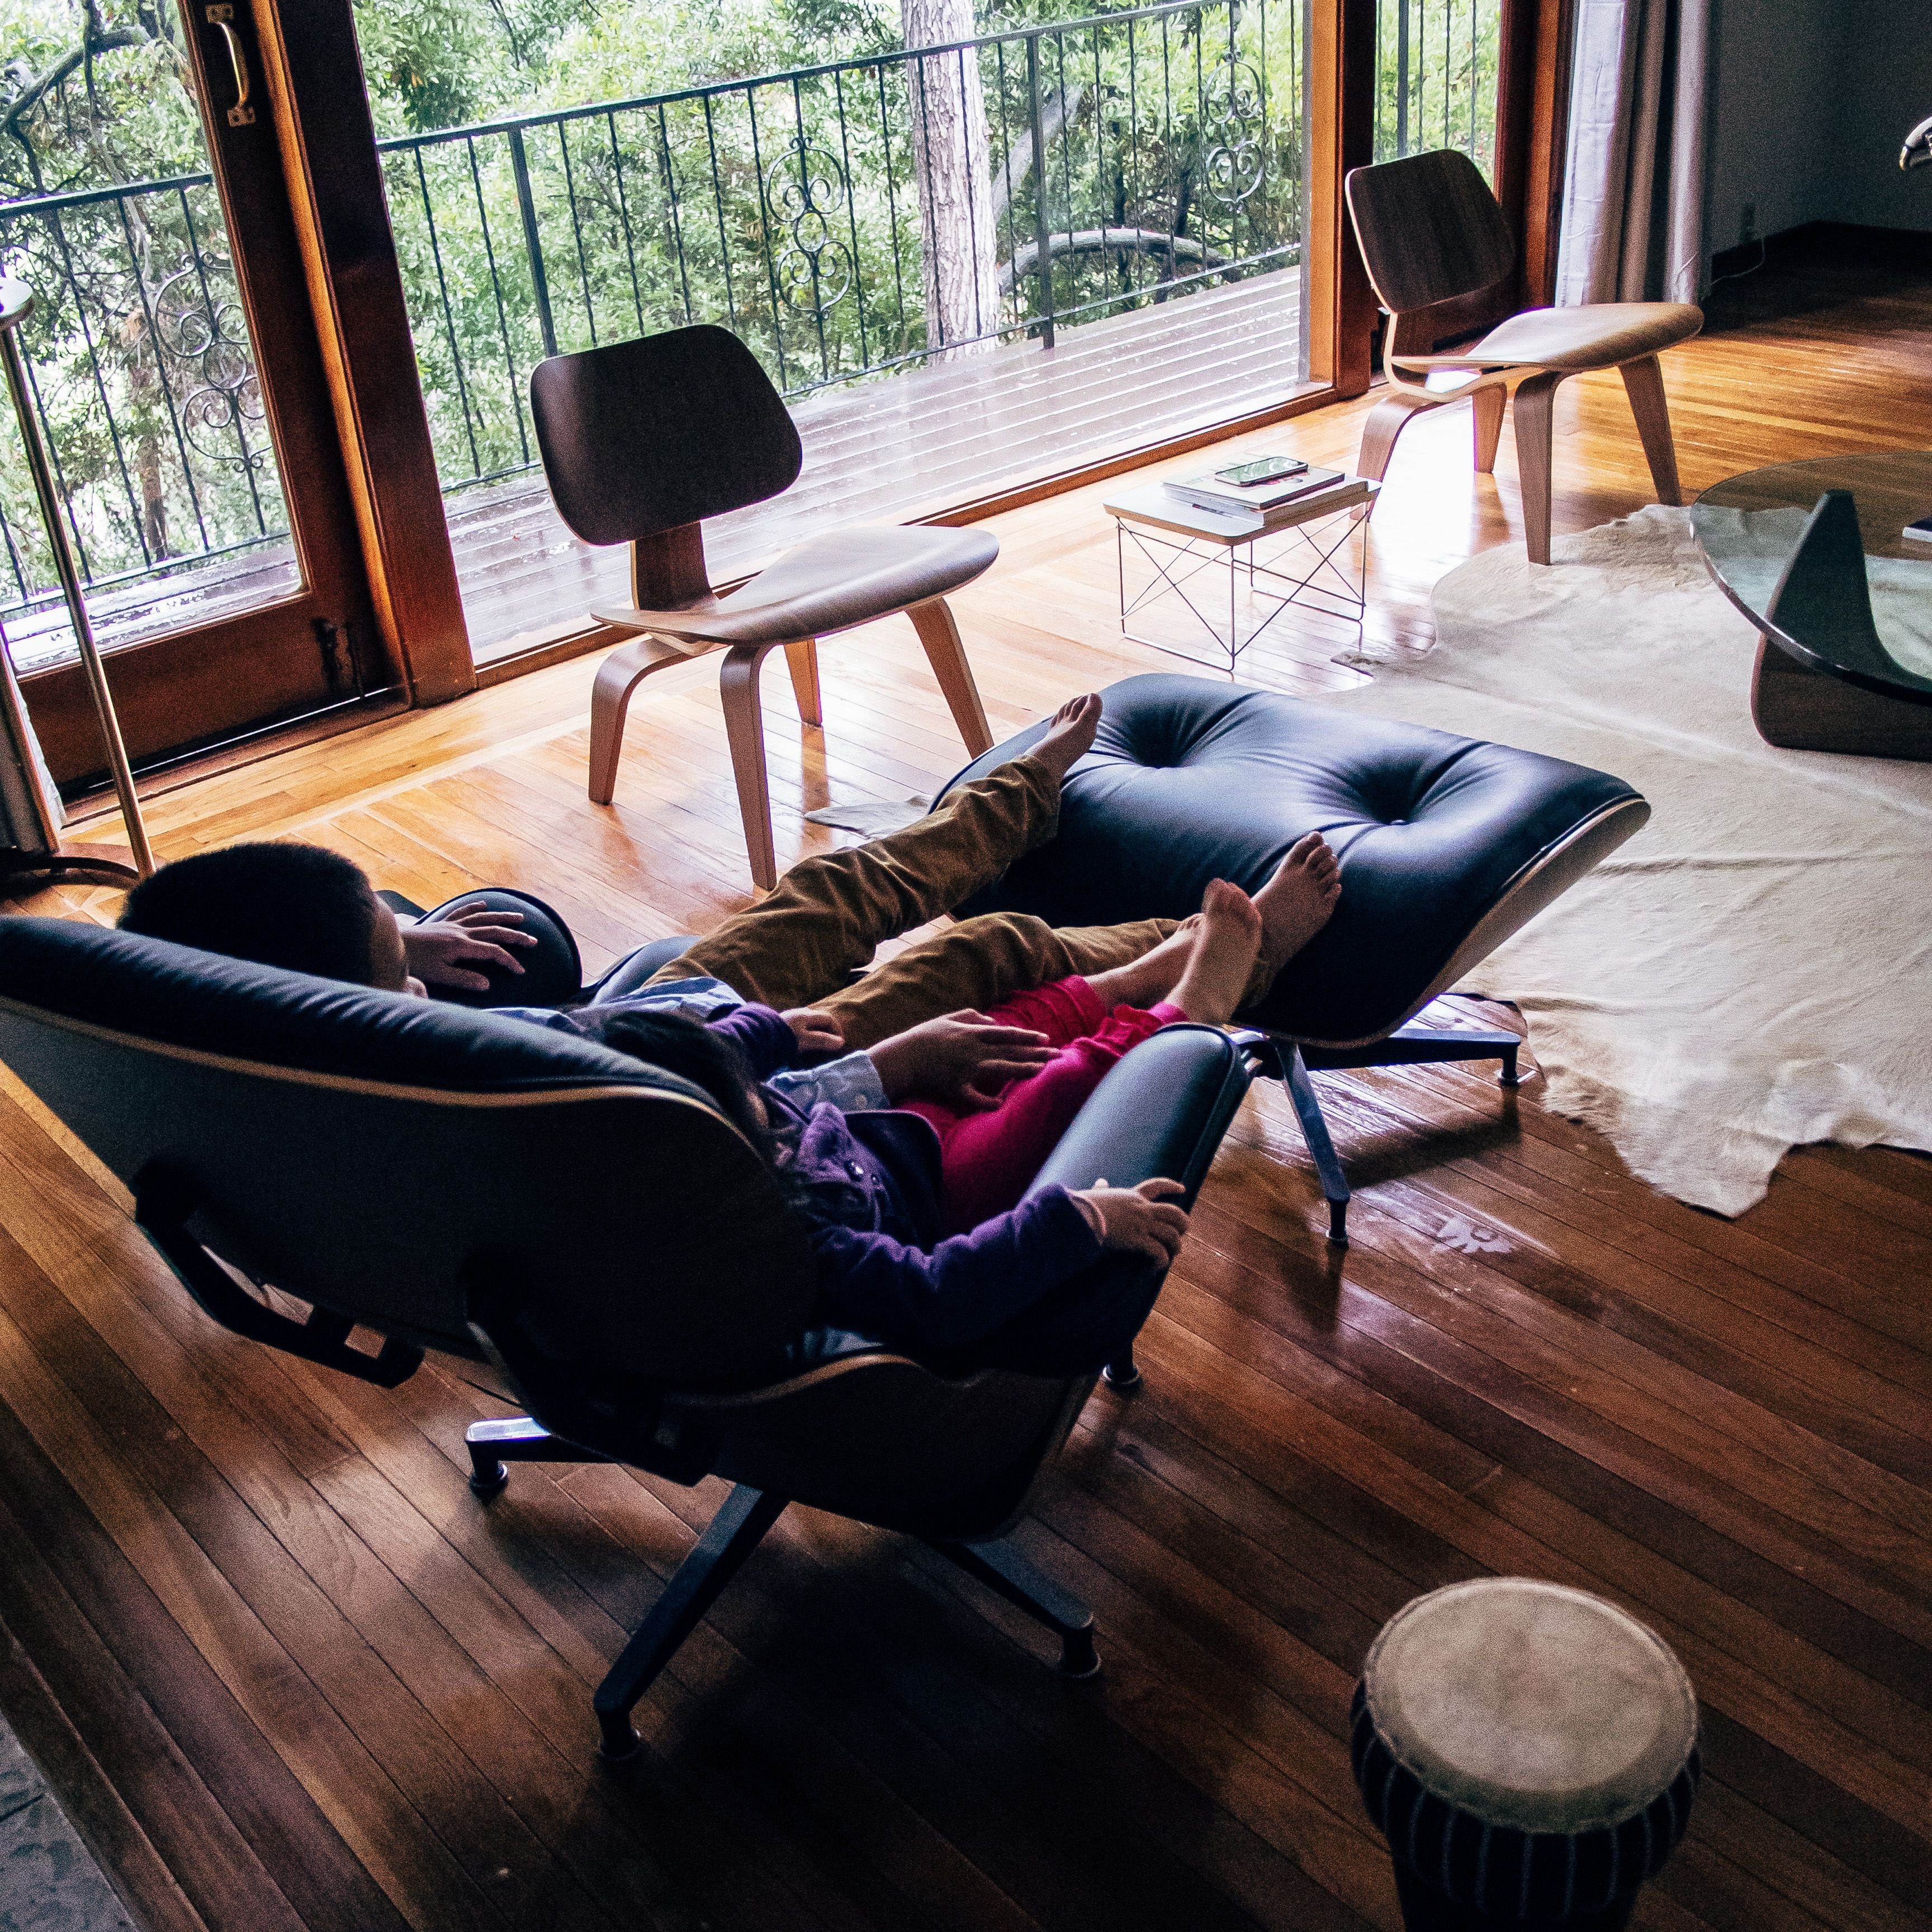 Haven't pinterest in a while. My two kids lounging together on a heavy rainy Sunday morning in an Eames 670/671 Lounge. Enjoying the music of the rain drops together.